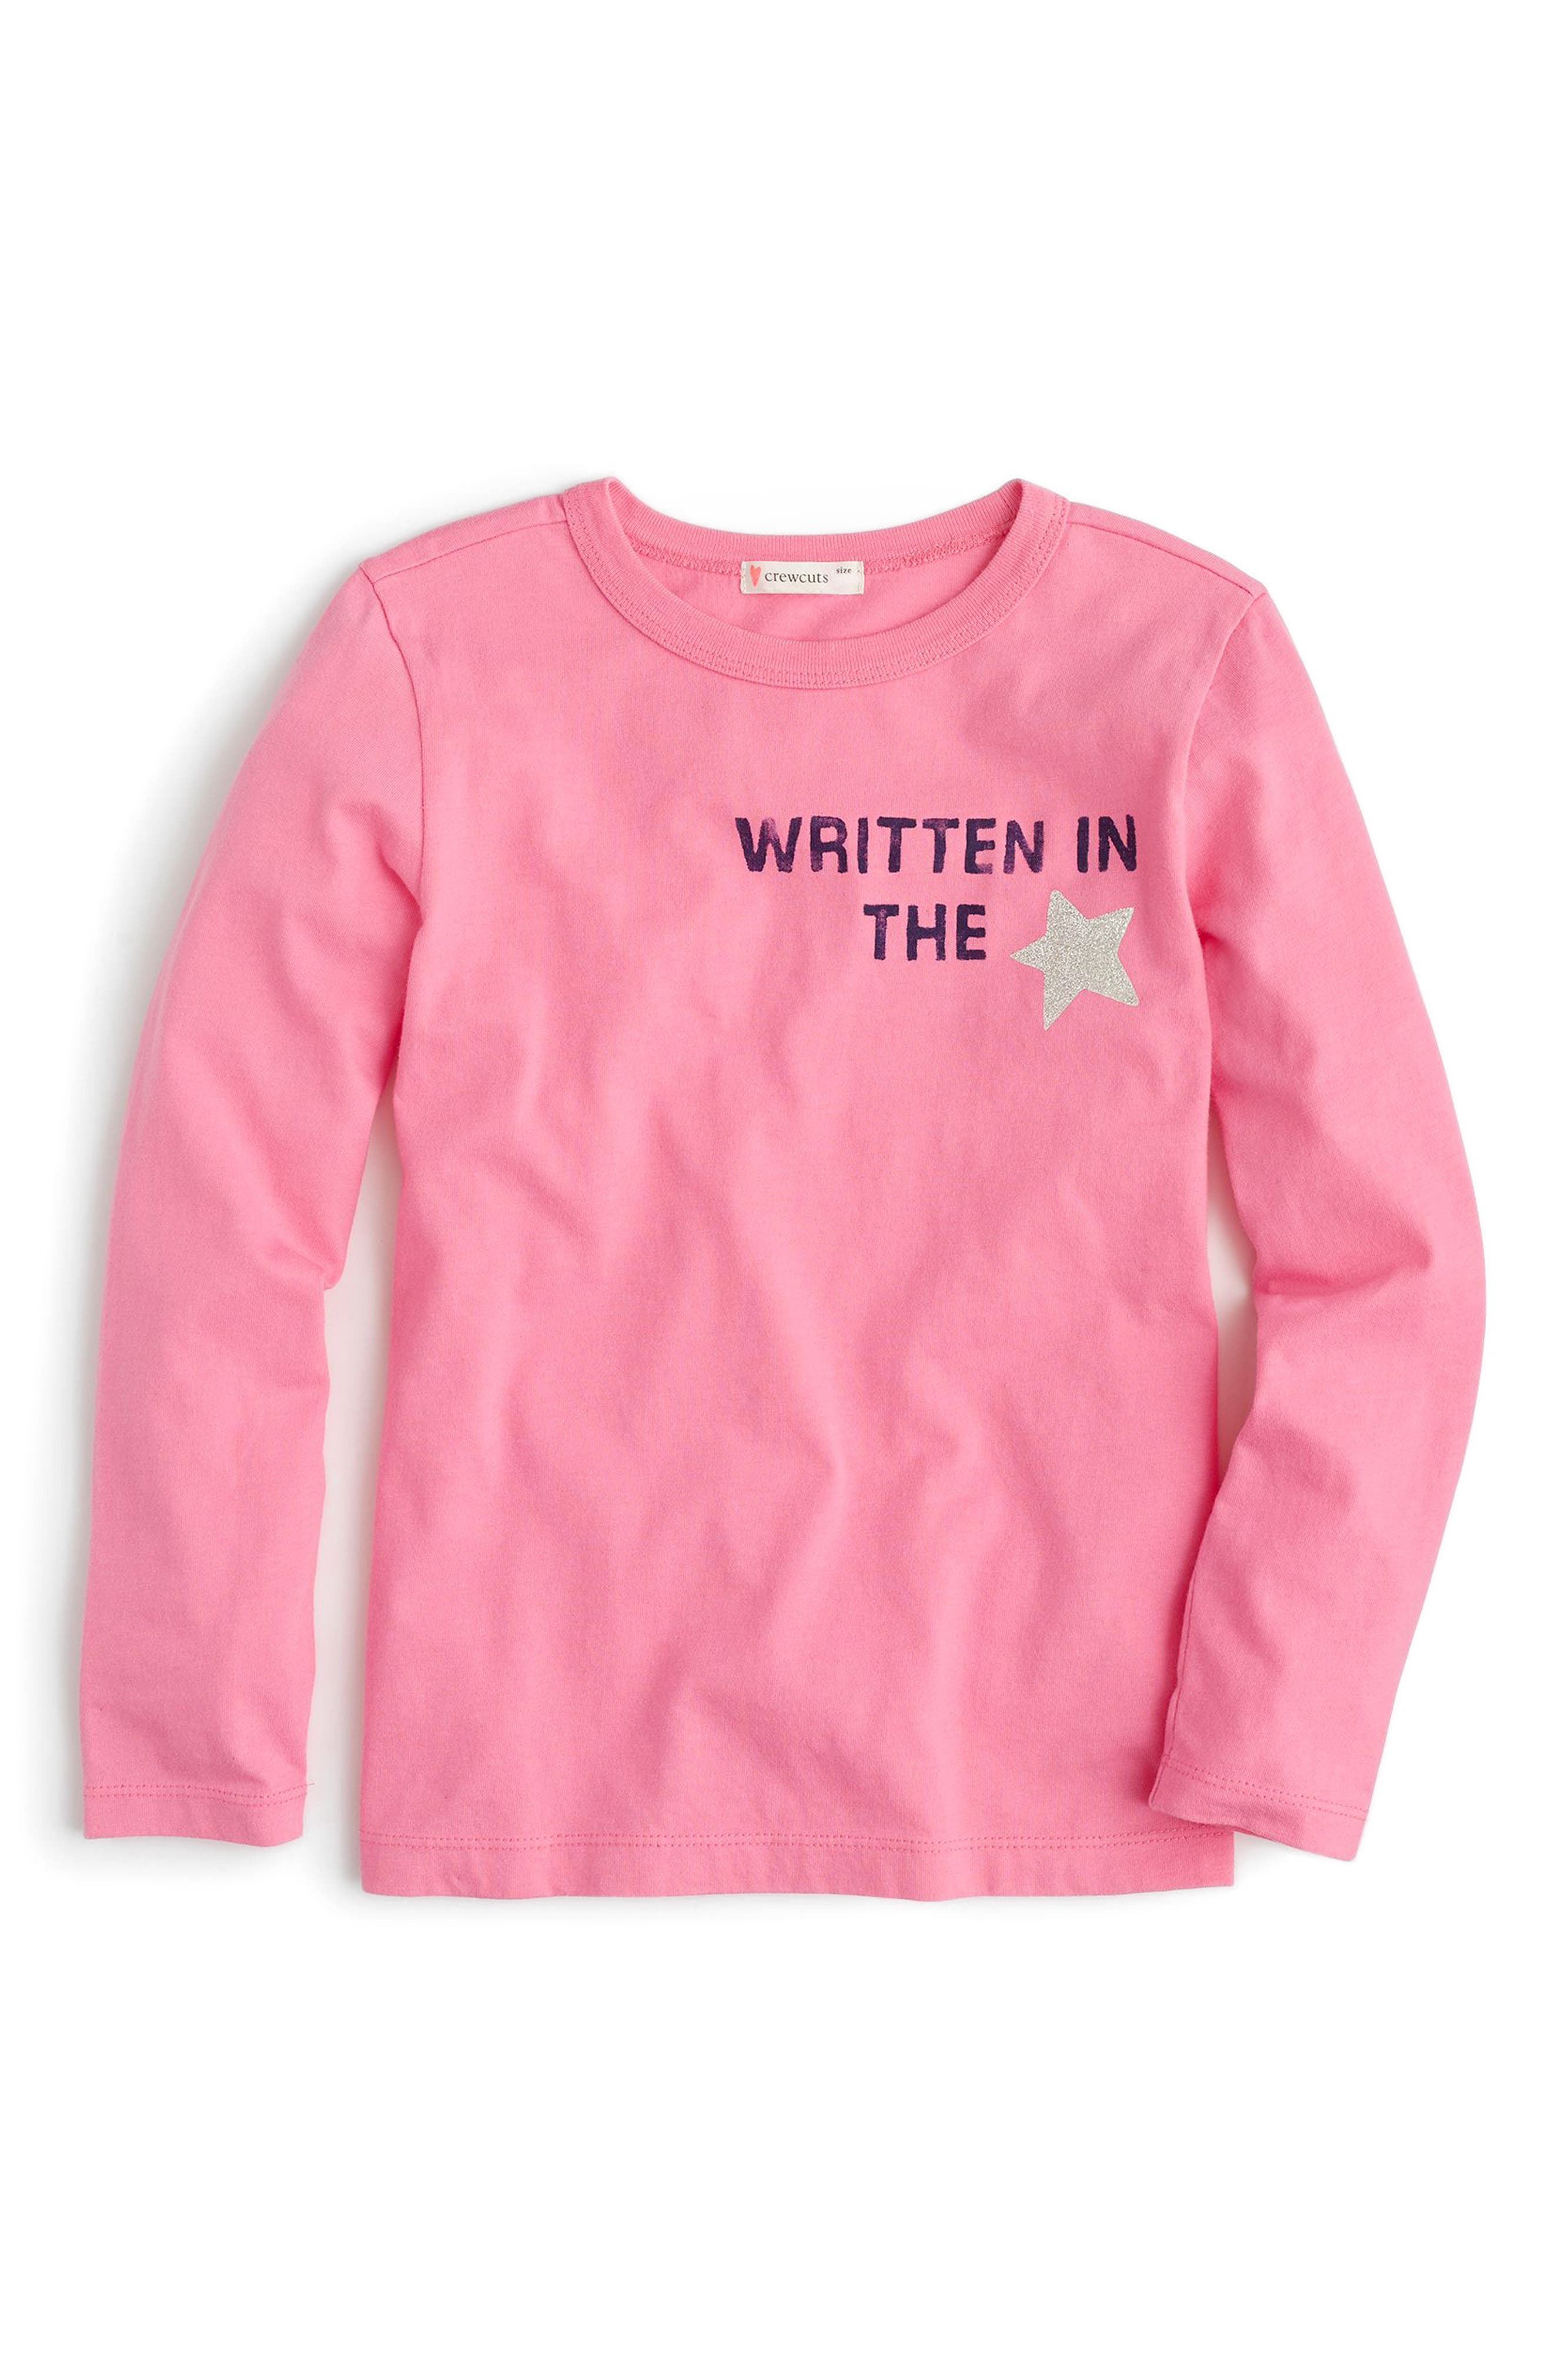 Written In The Stars Tee,                             Main thumbnail 1, color,                             Flash Pink Ka2996